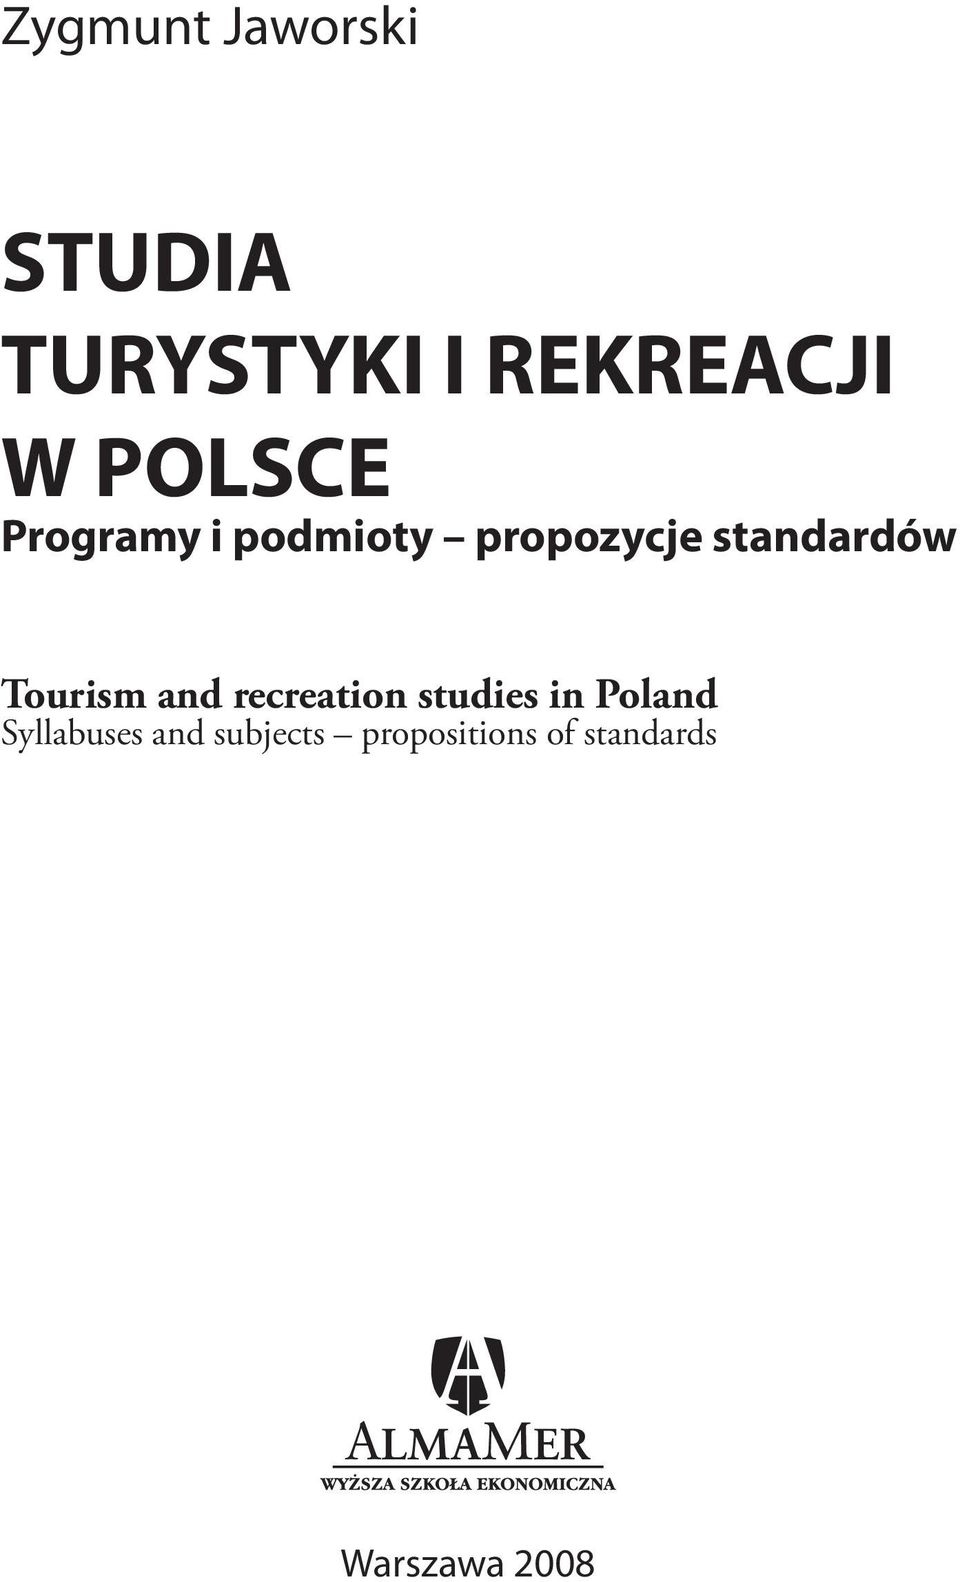 Tourism and recreation studies in Poland